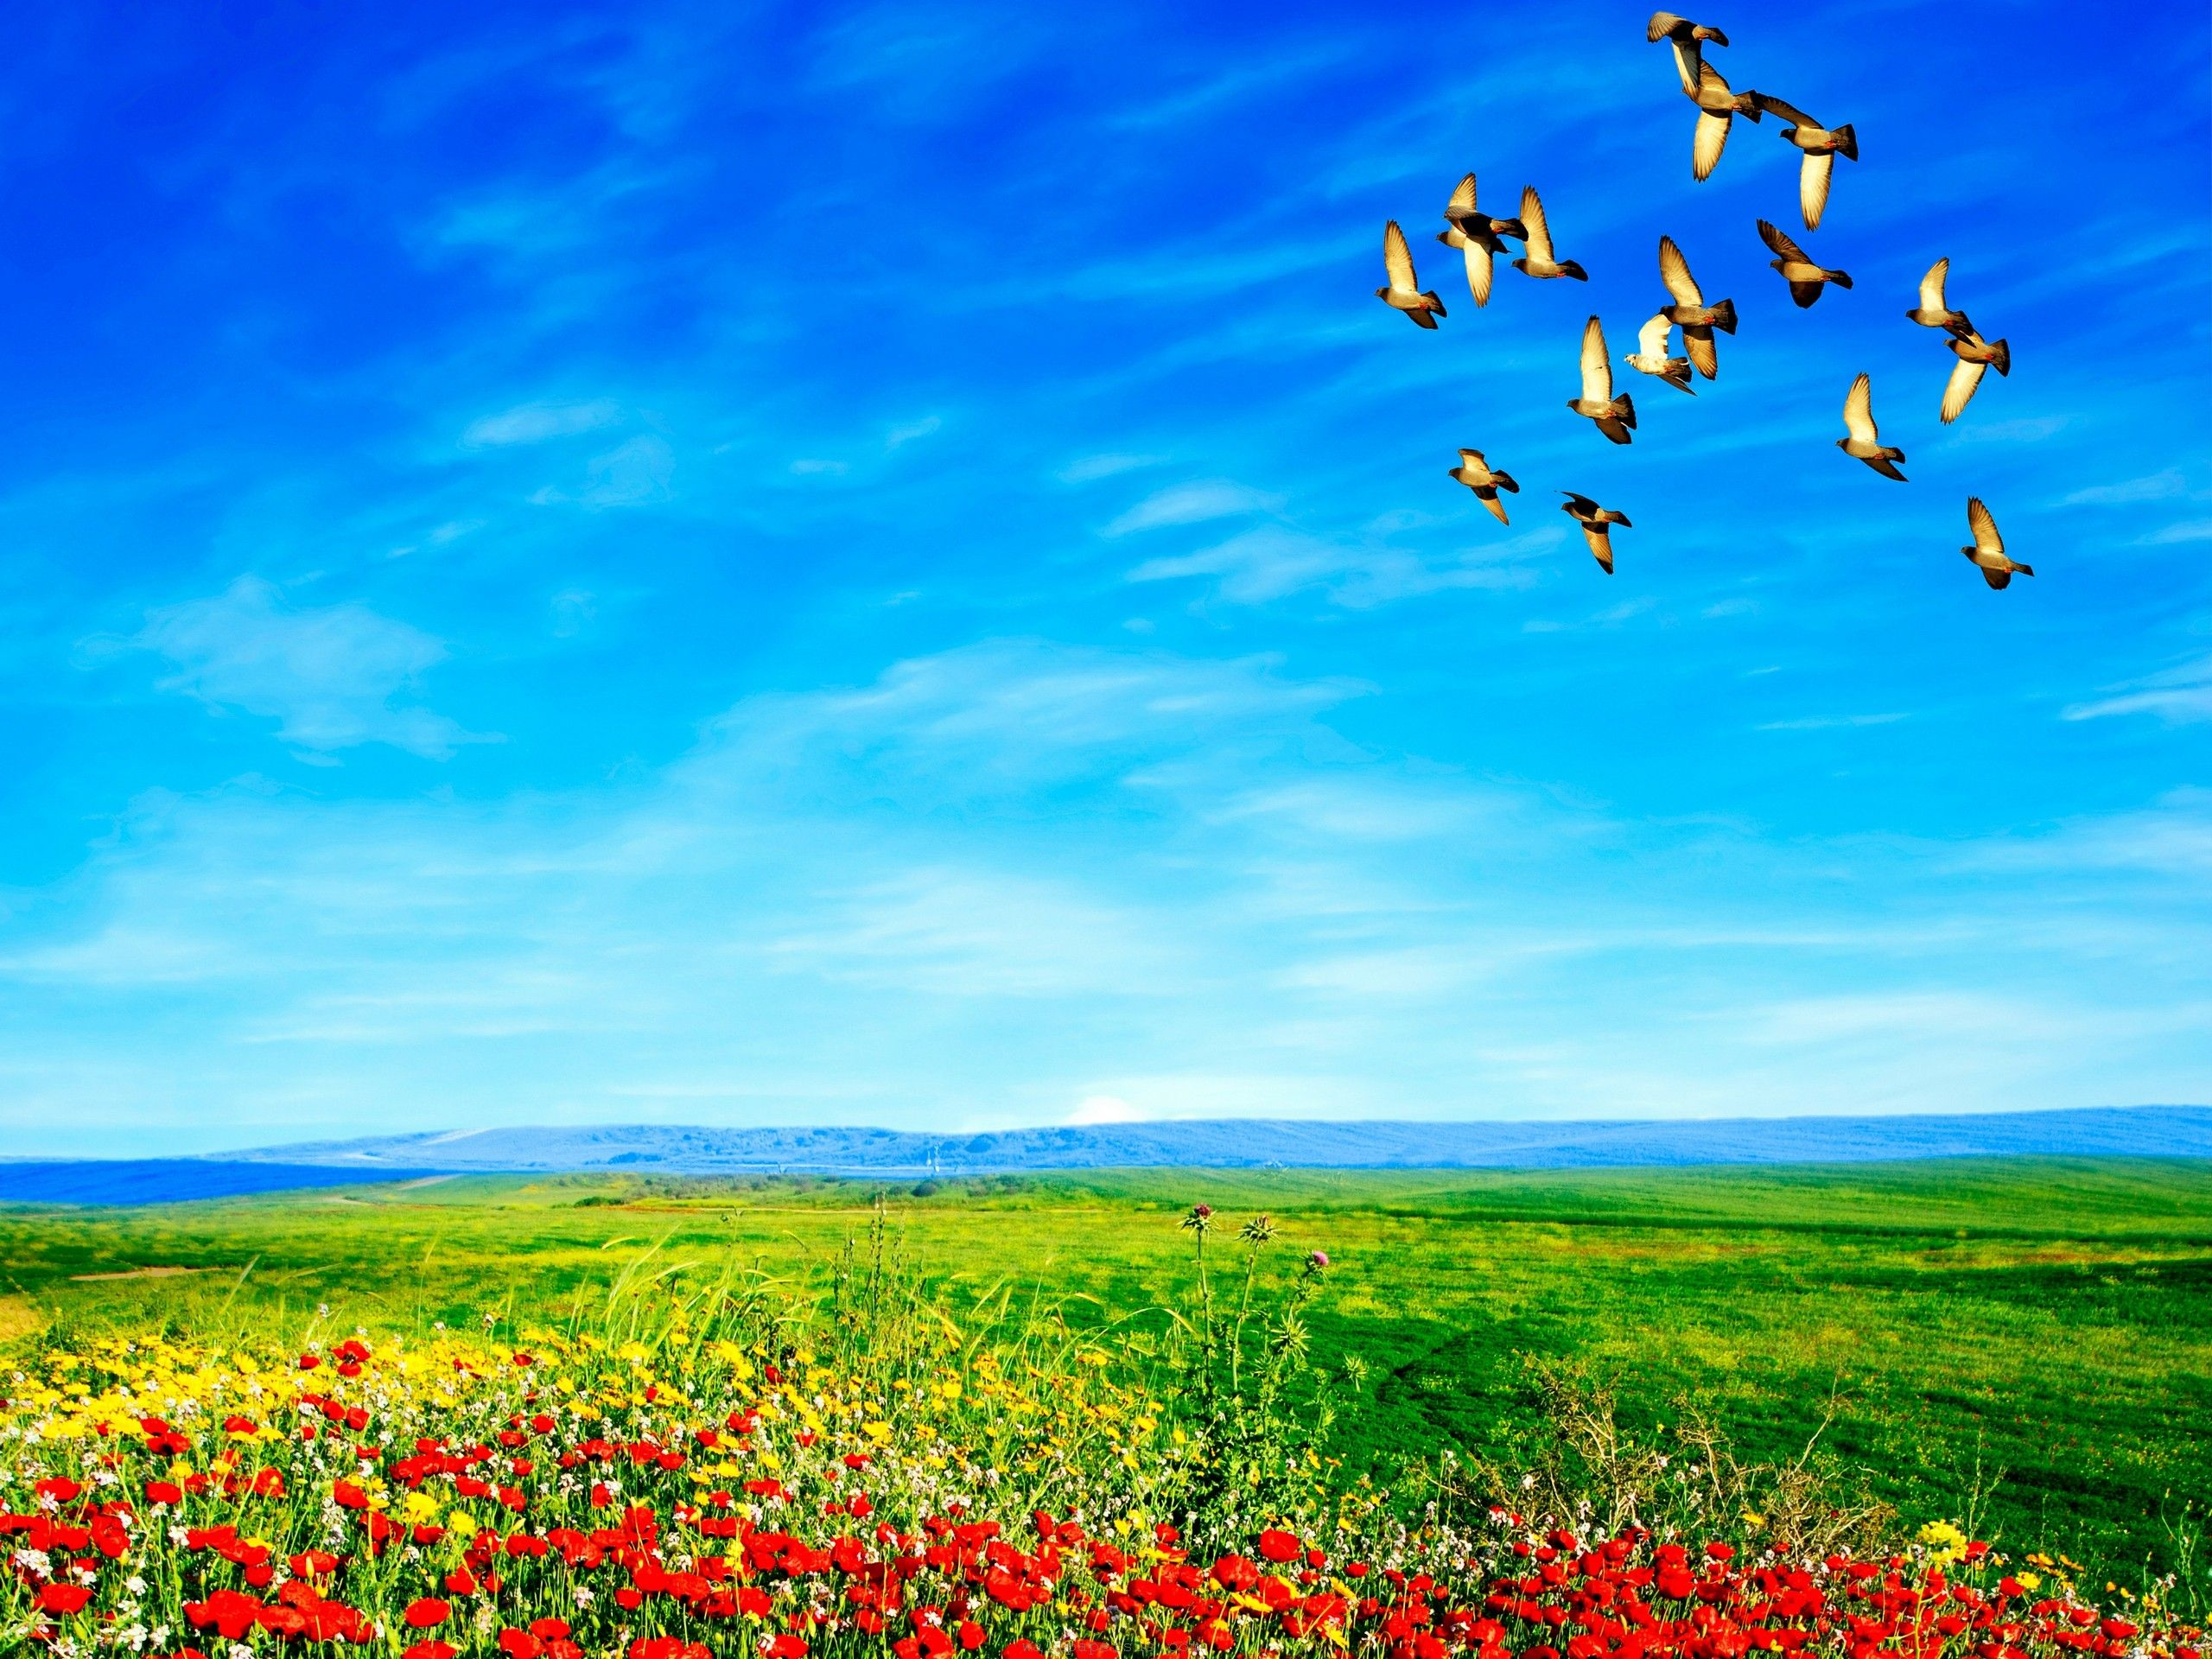 Beautiful Birds Flying On The Sky Hd Wallpaper Download Awesome Nice And High Quality Hd Wallpapers From Backg Beautiful Bird Wallpaper Nature Birds Nature